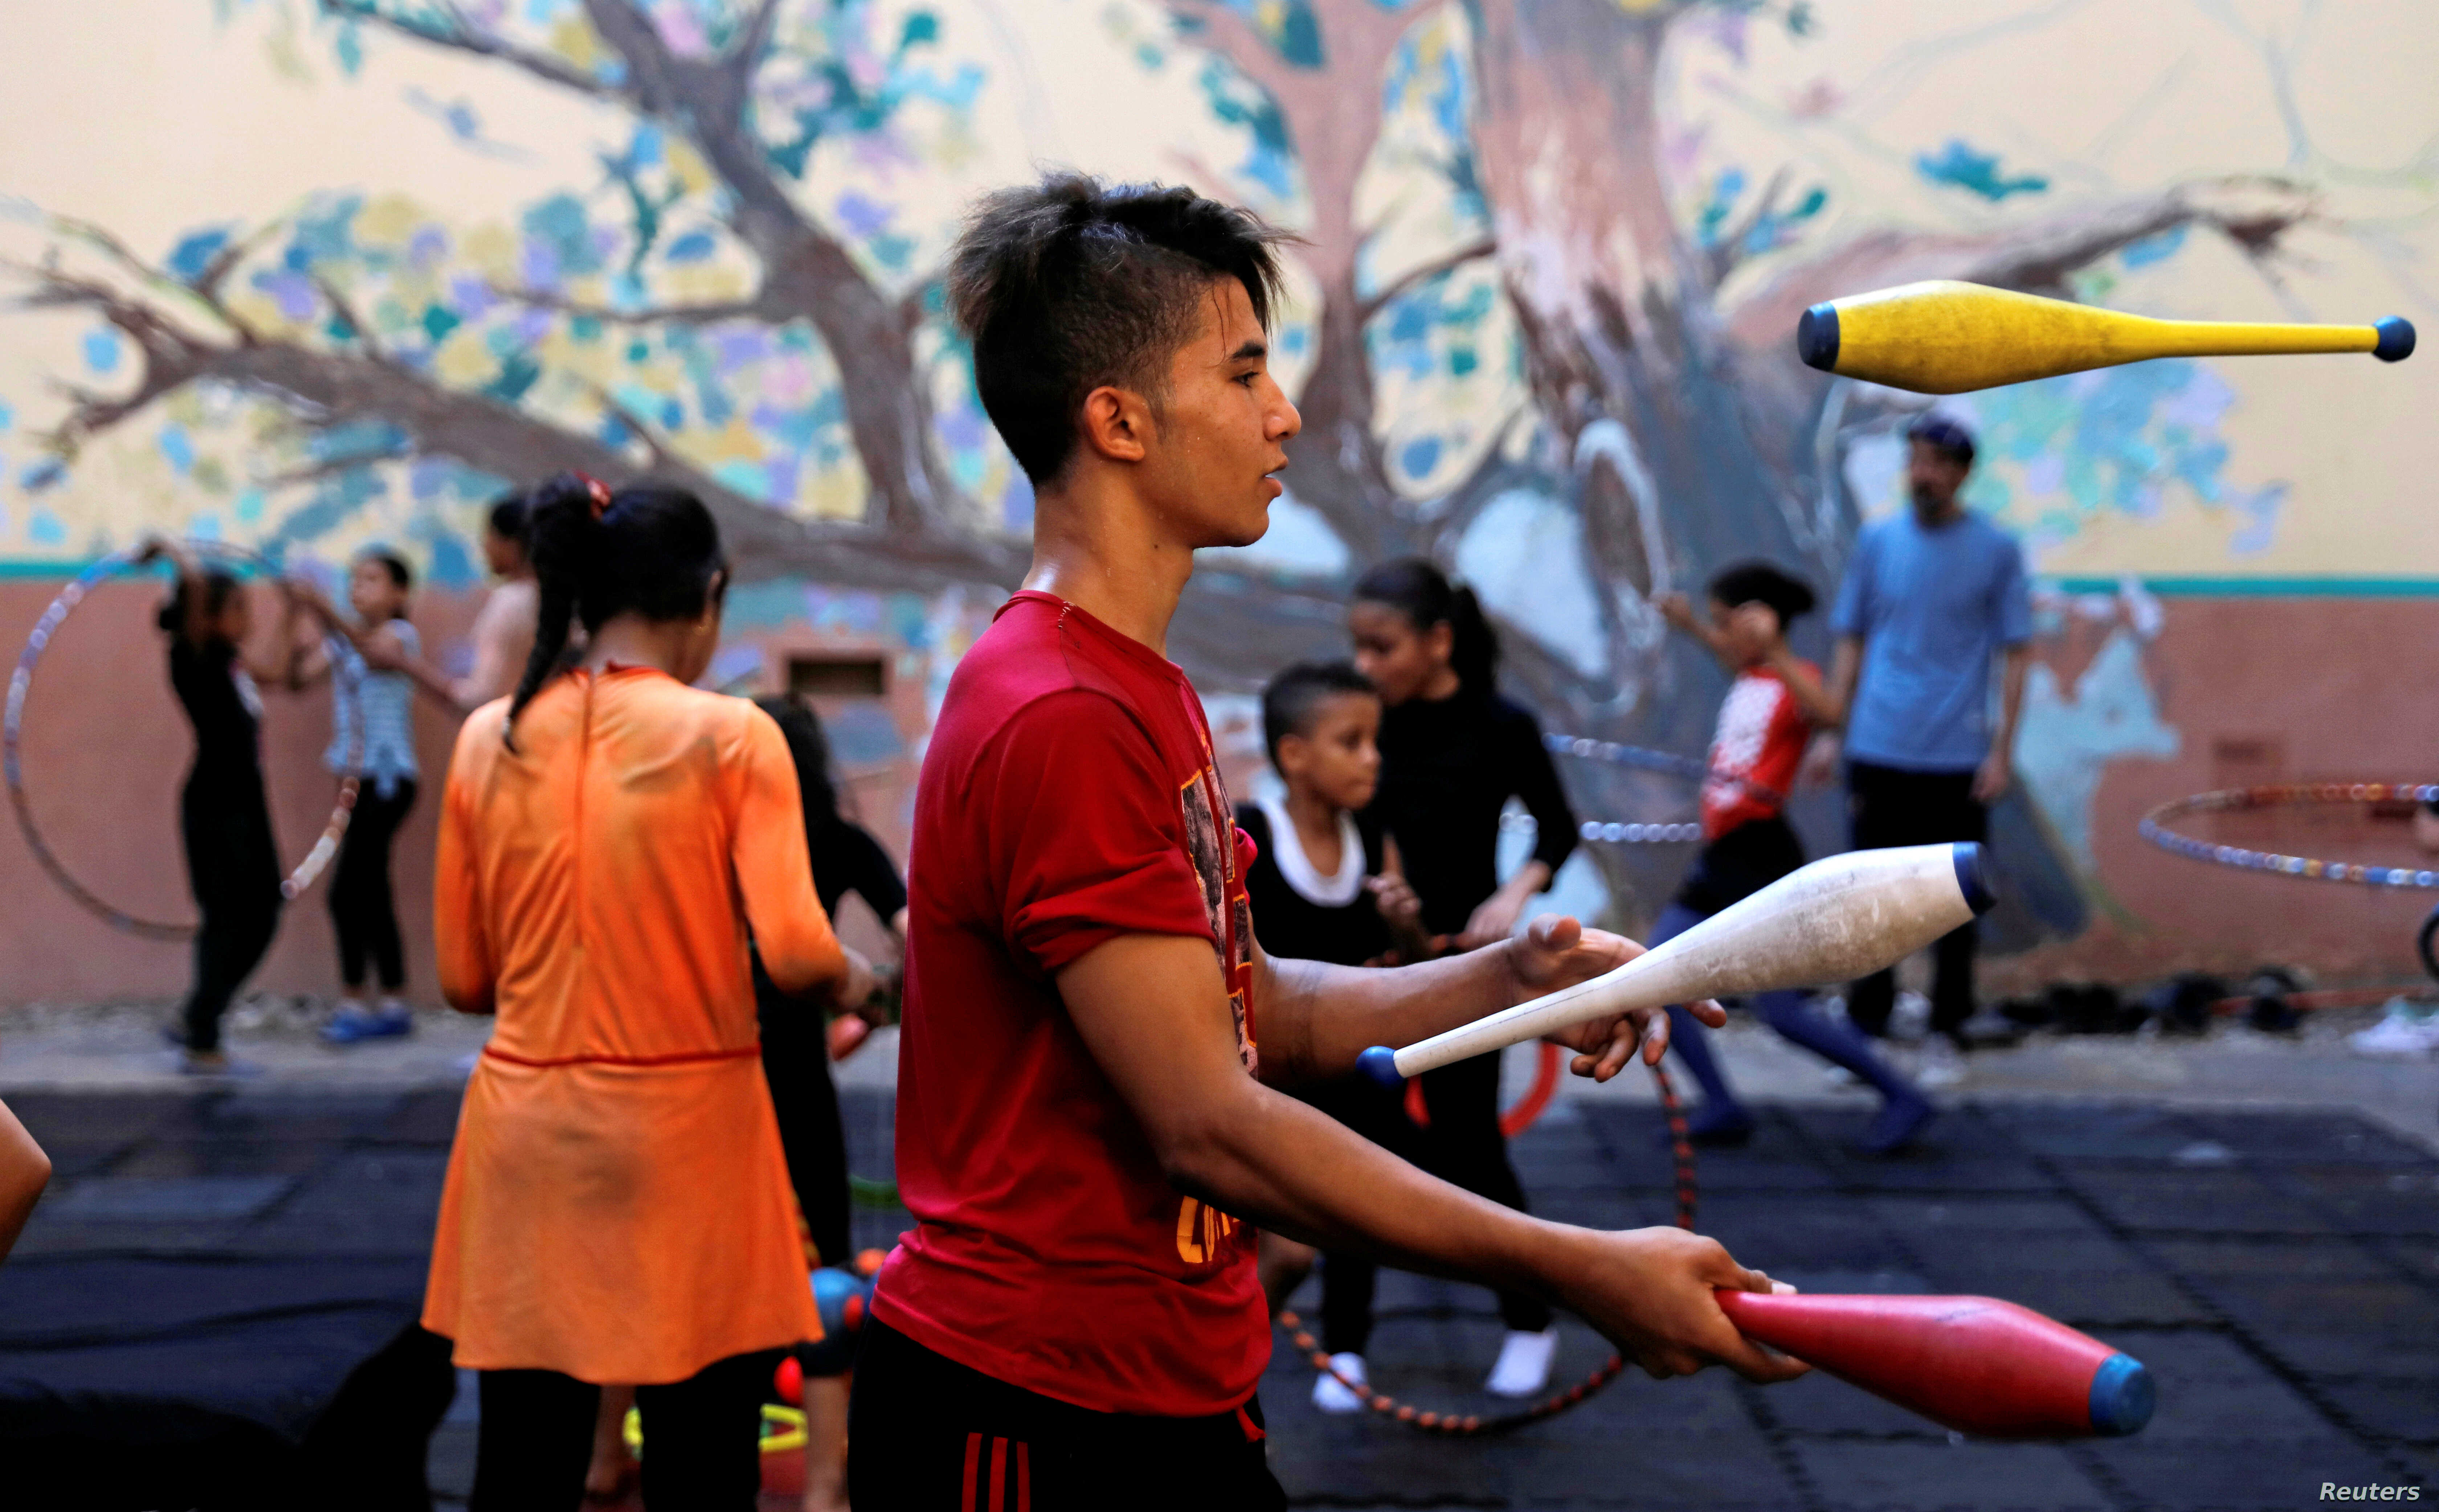 """A boy performs during a training session at al-Darb al-Ahmar Arts School """"DAAS"""" where children learn circus skills and arts in old Cairo, Egypt, July 17, 2018."""